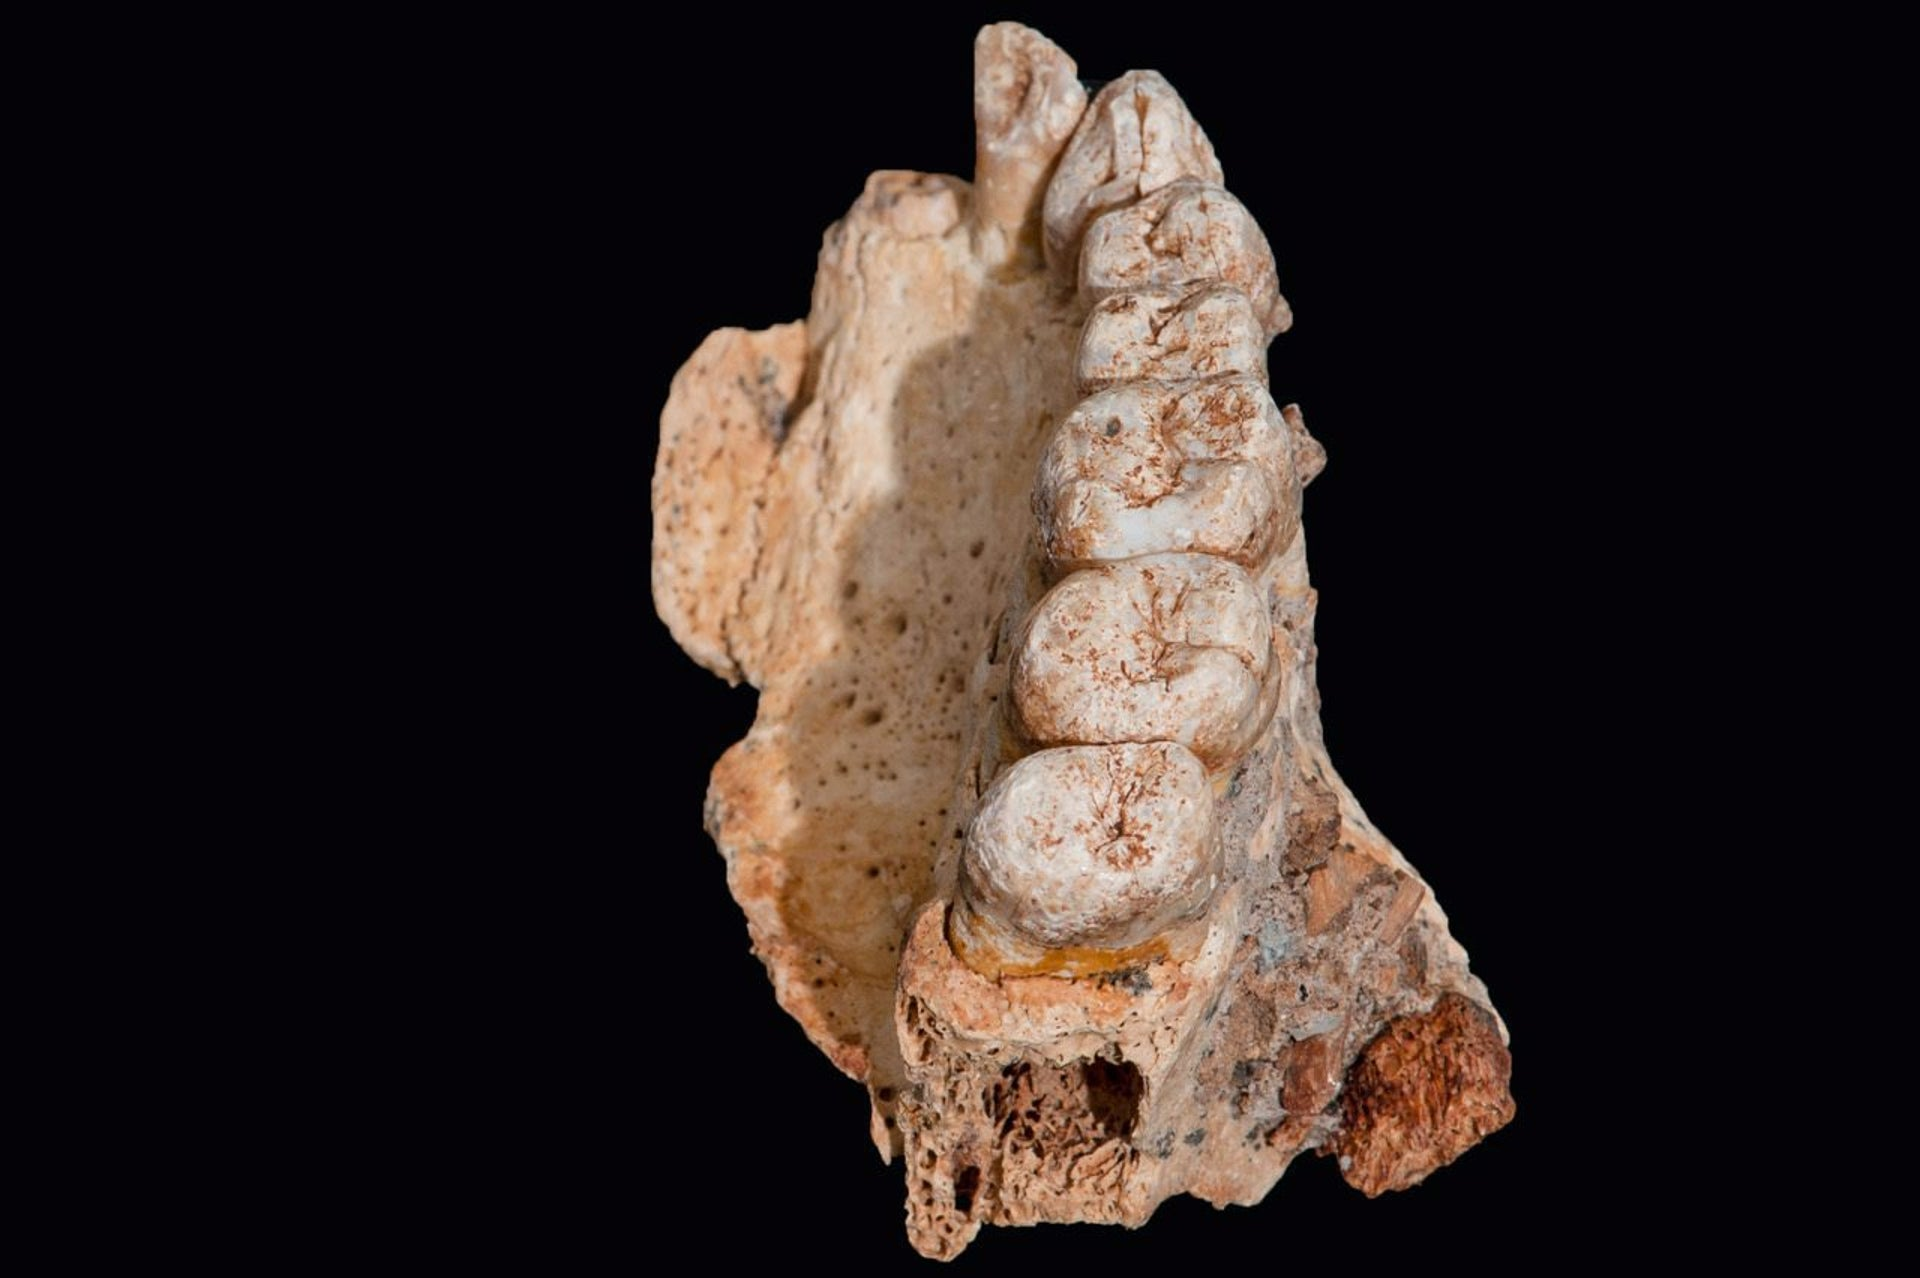 Upper left jawbone of a modern Homo sapiens found in Misliya cave on Mount Carmel and dated to nearly 200,000 years ago, the oldest human remains out of Africa.